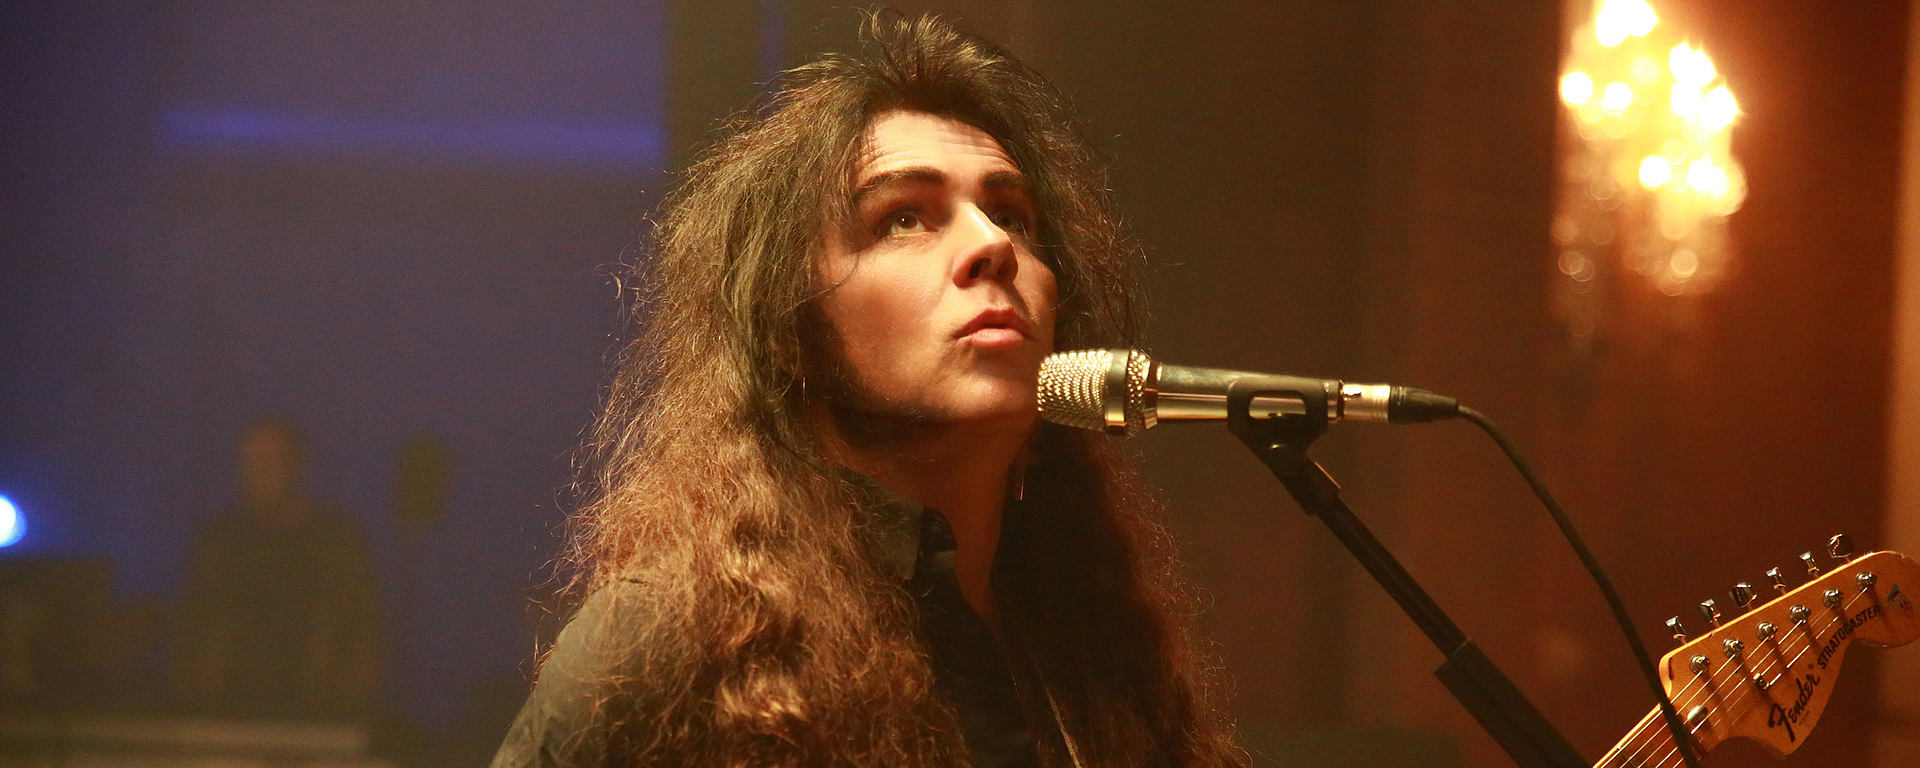 Yngwie Malmsteen uses LEWITT microphones for vocals on stage